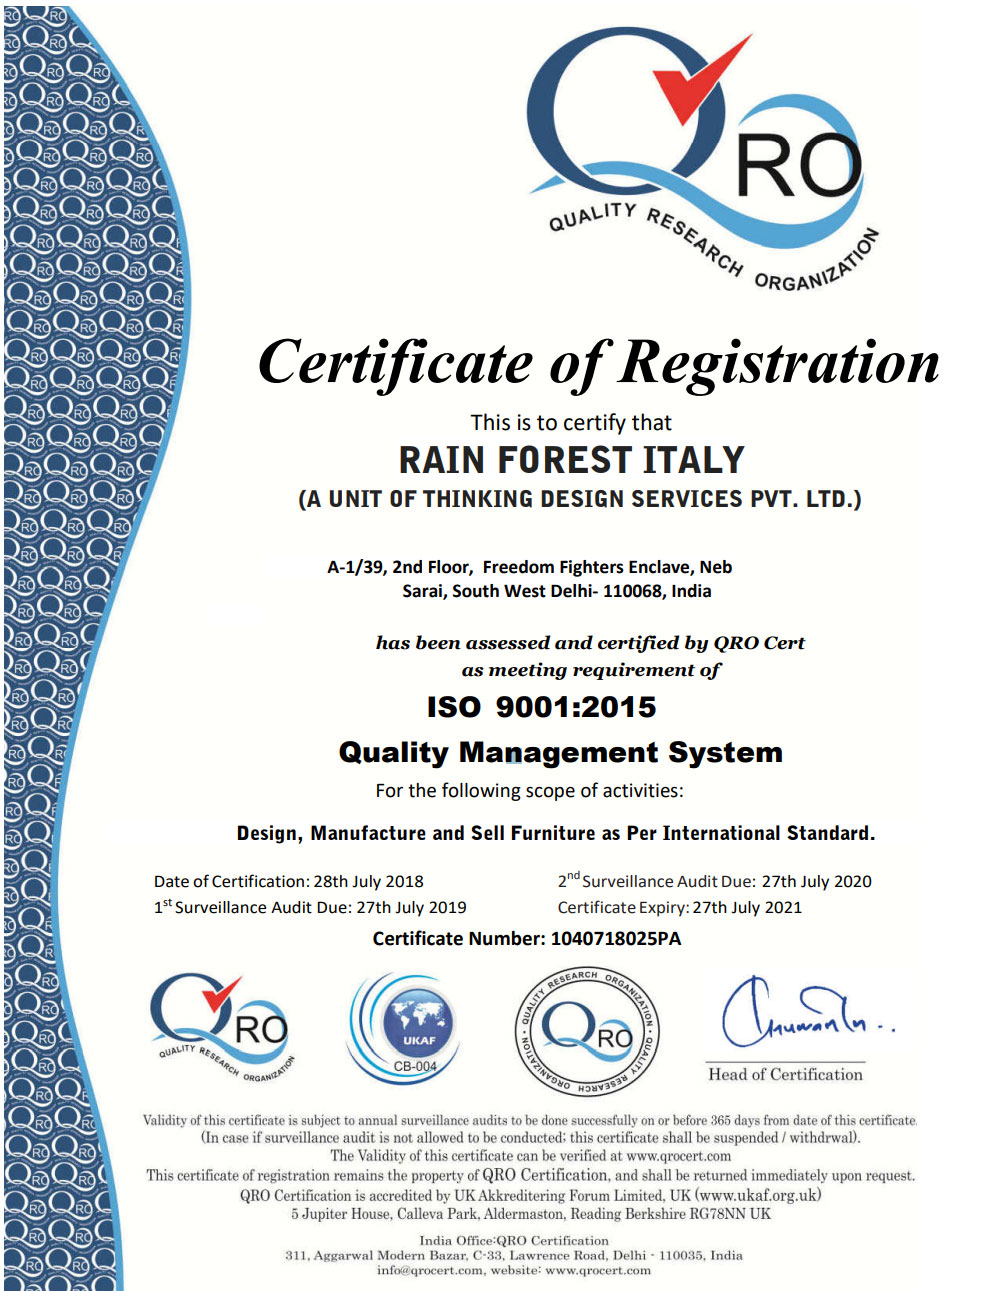 Rainforest Italy | ISO Certification fo Quality Management System